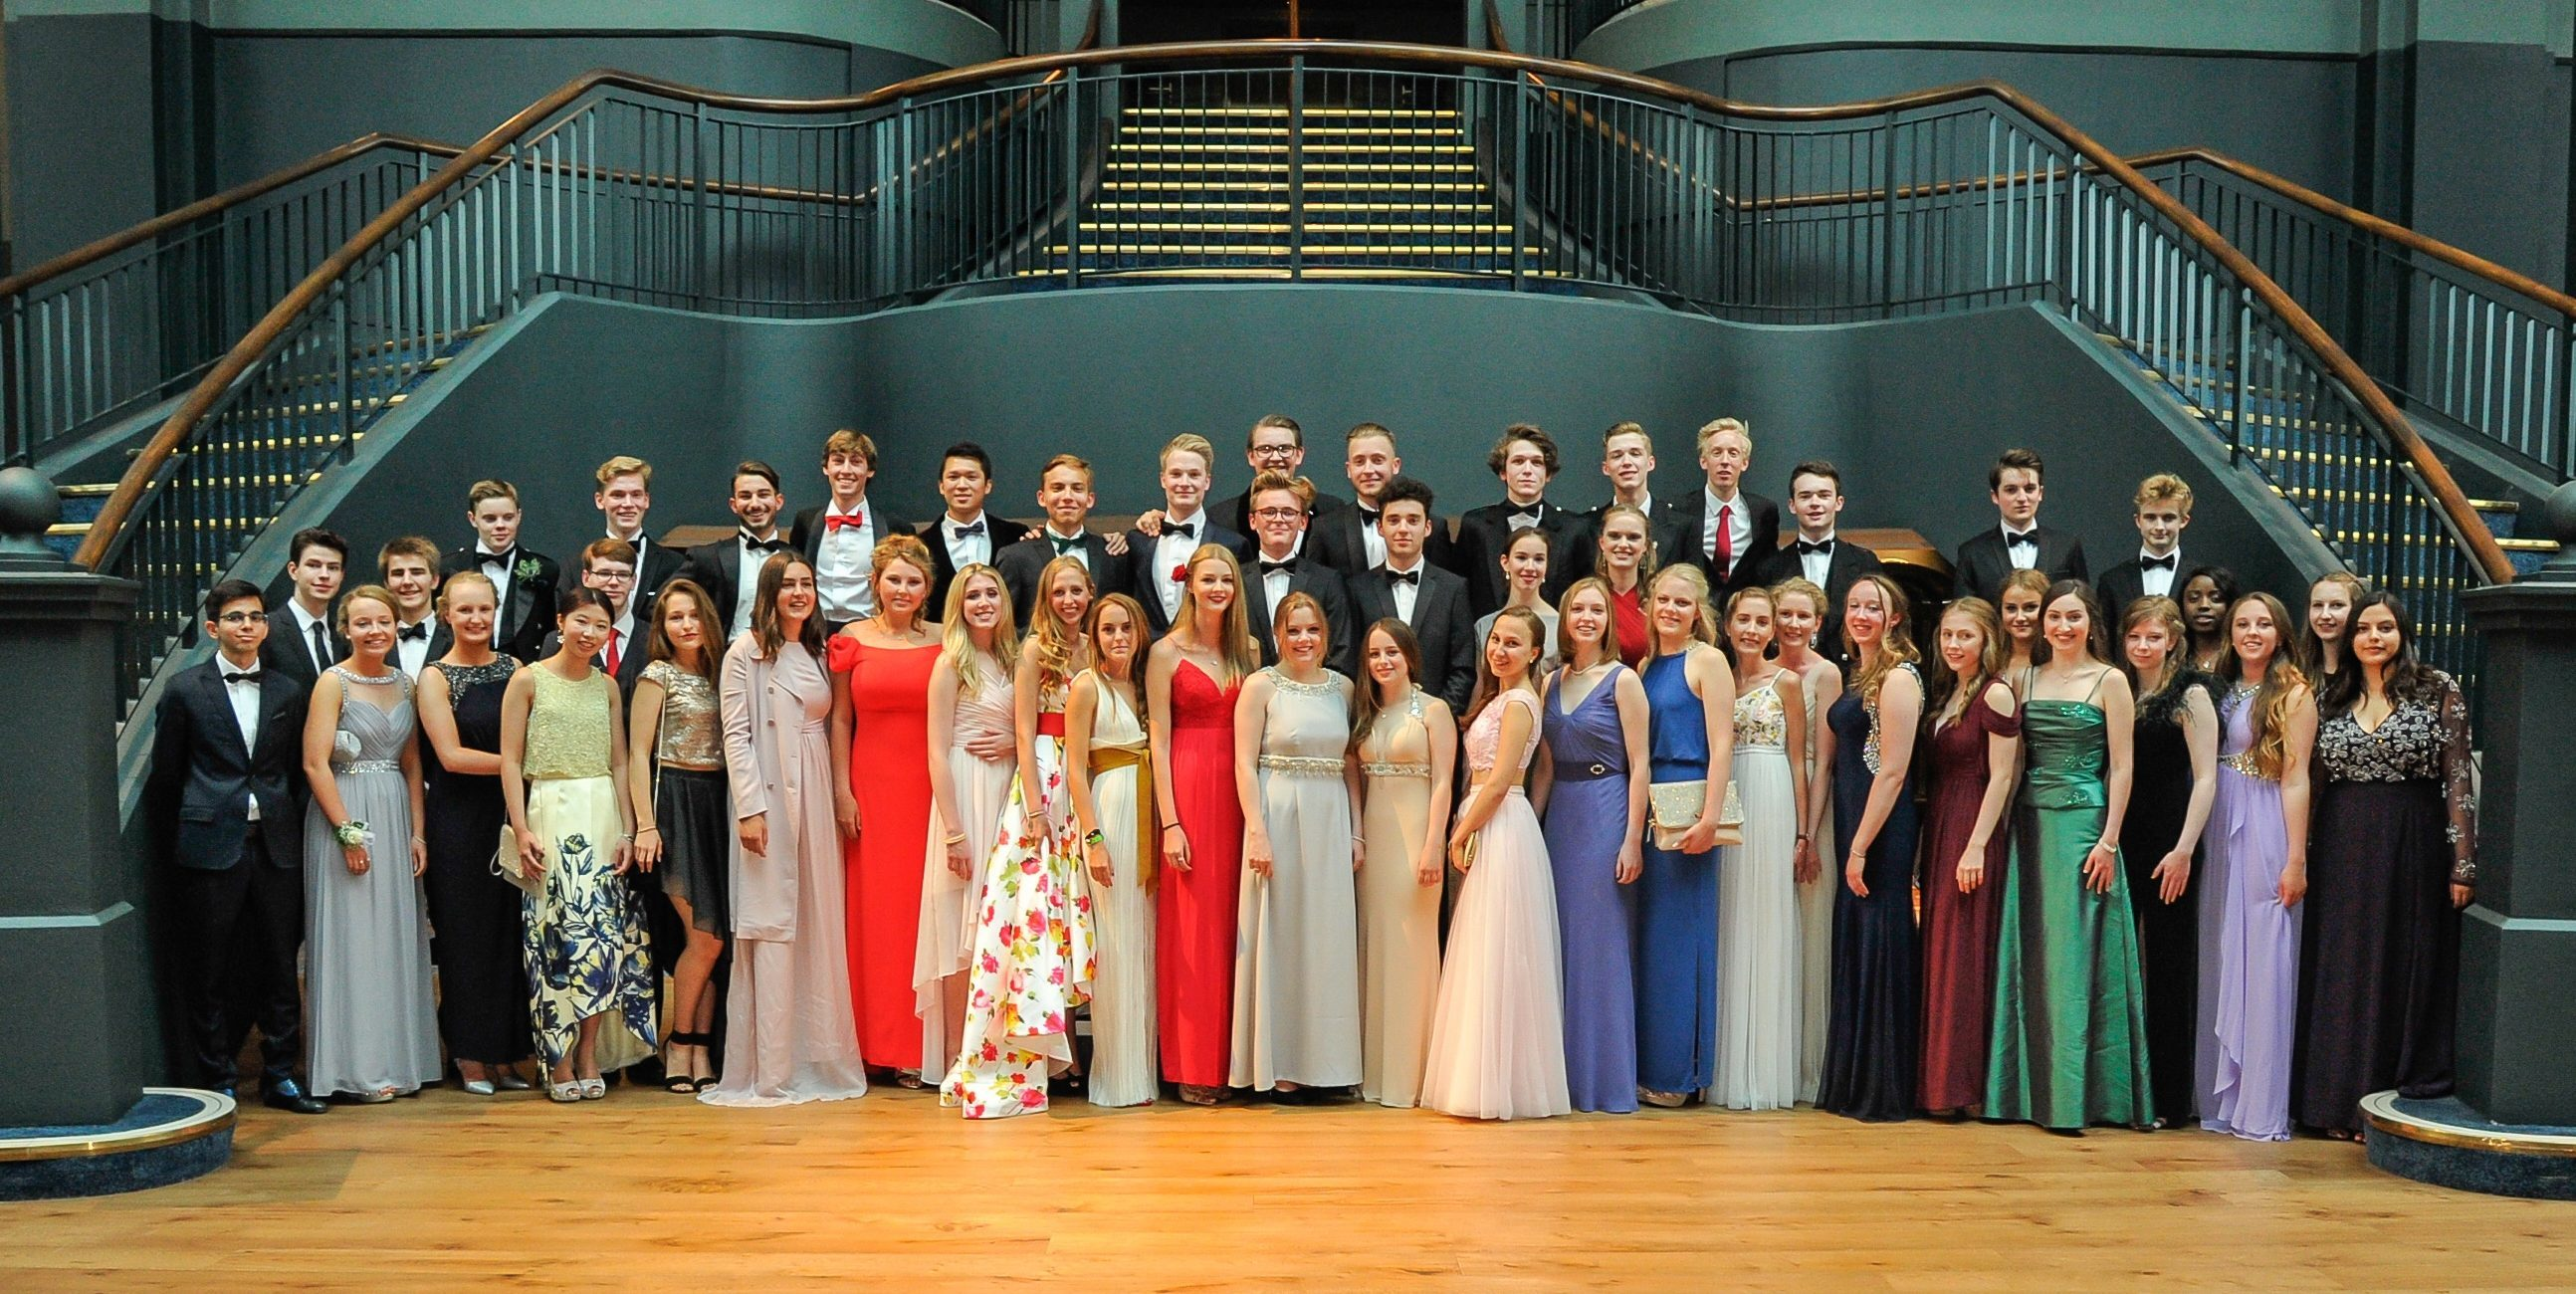 St Leonards School leavers' prom